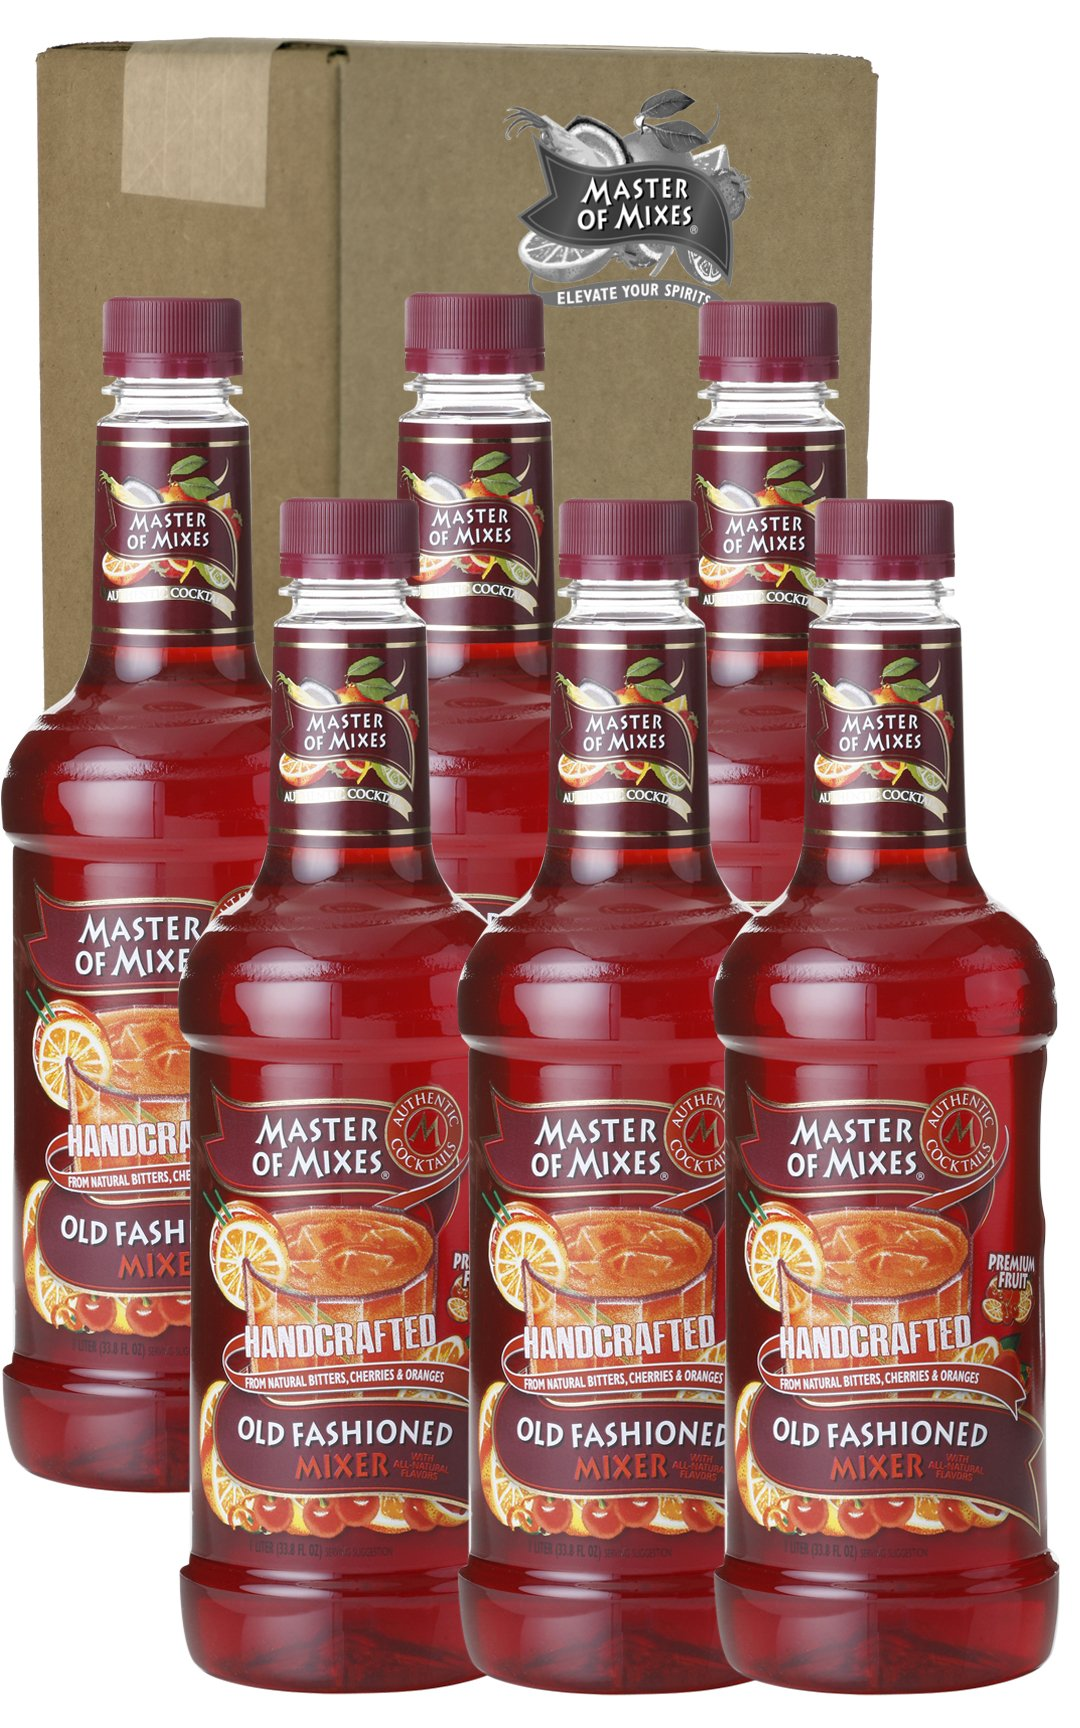 Master of Mixes Mix, Old Fashioned, 33.81-Ounce (Pack of 6)